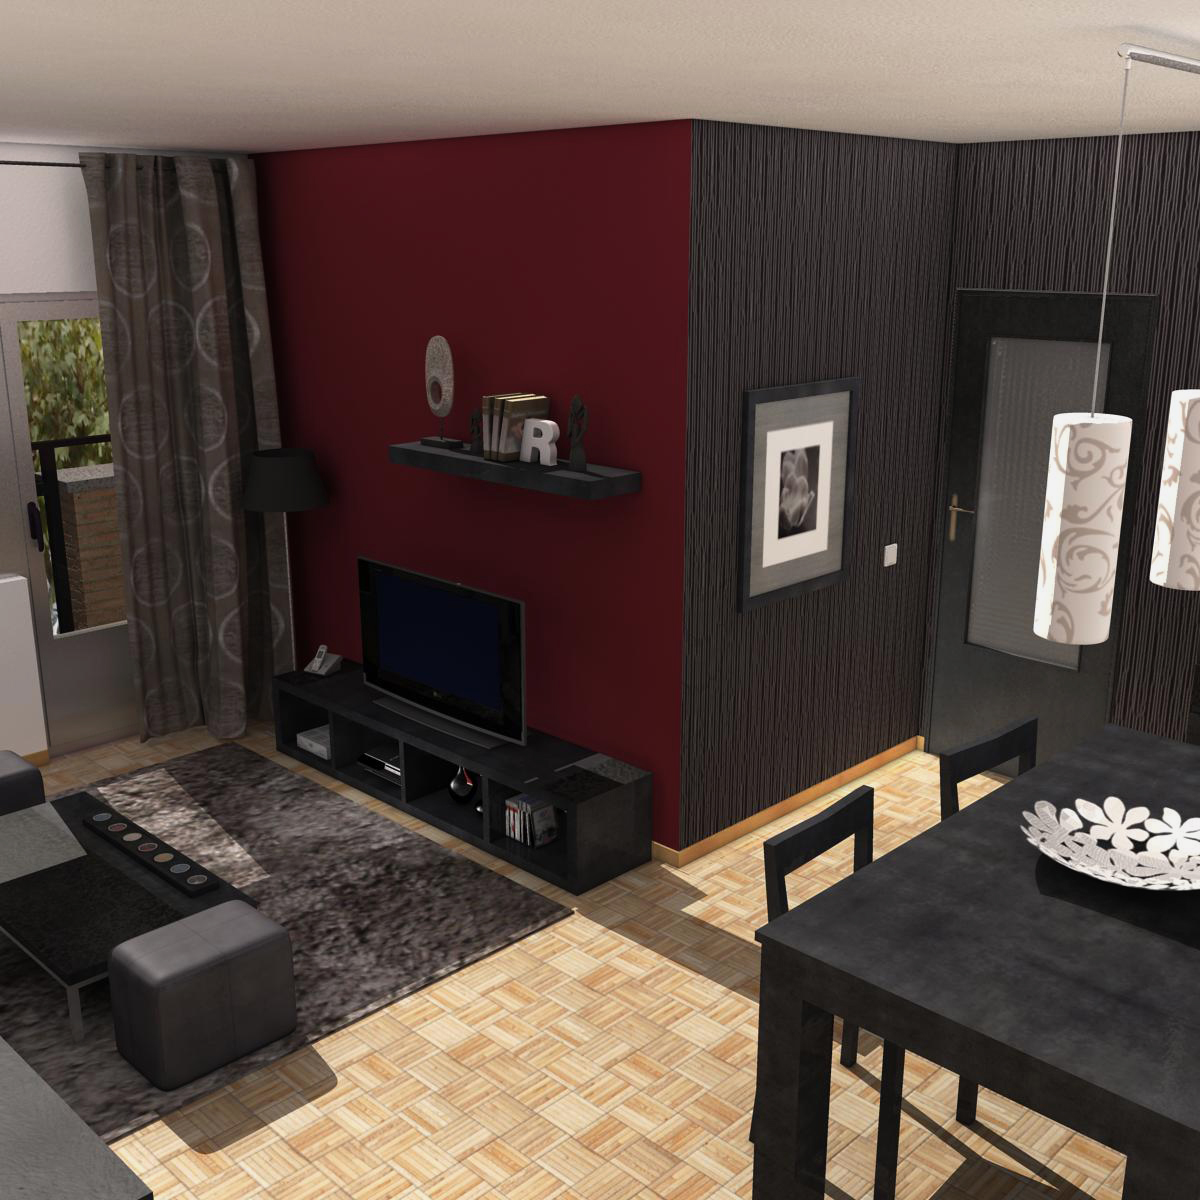 living room 3d model 3ds max fbx c4d ma mb obj 159609